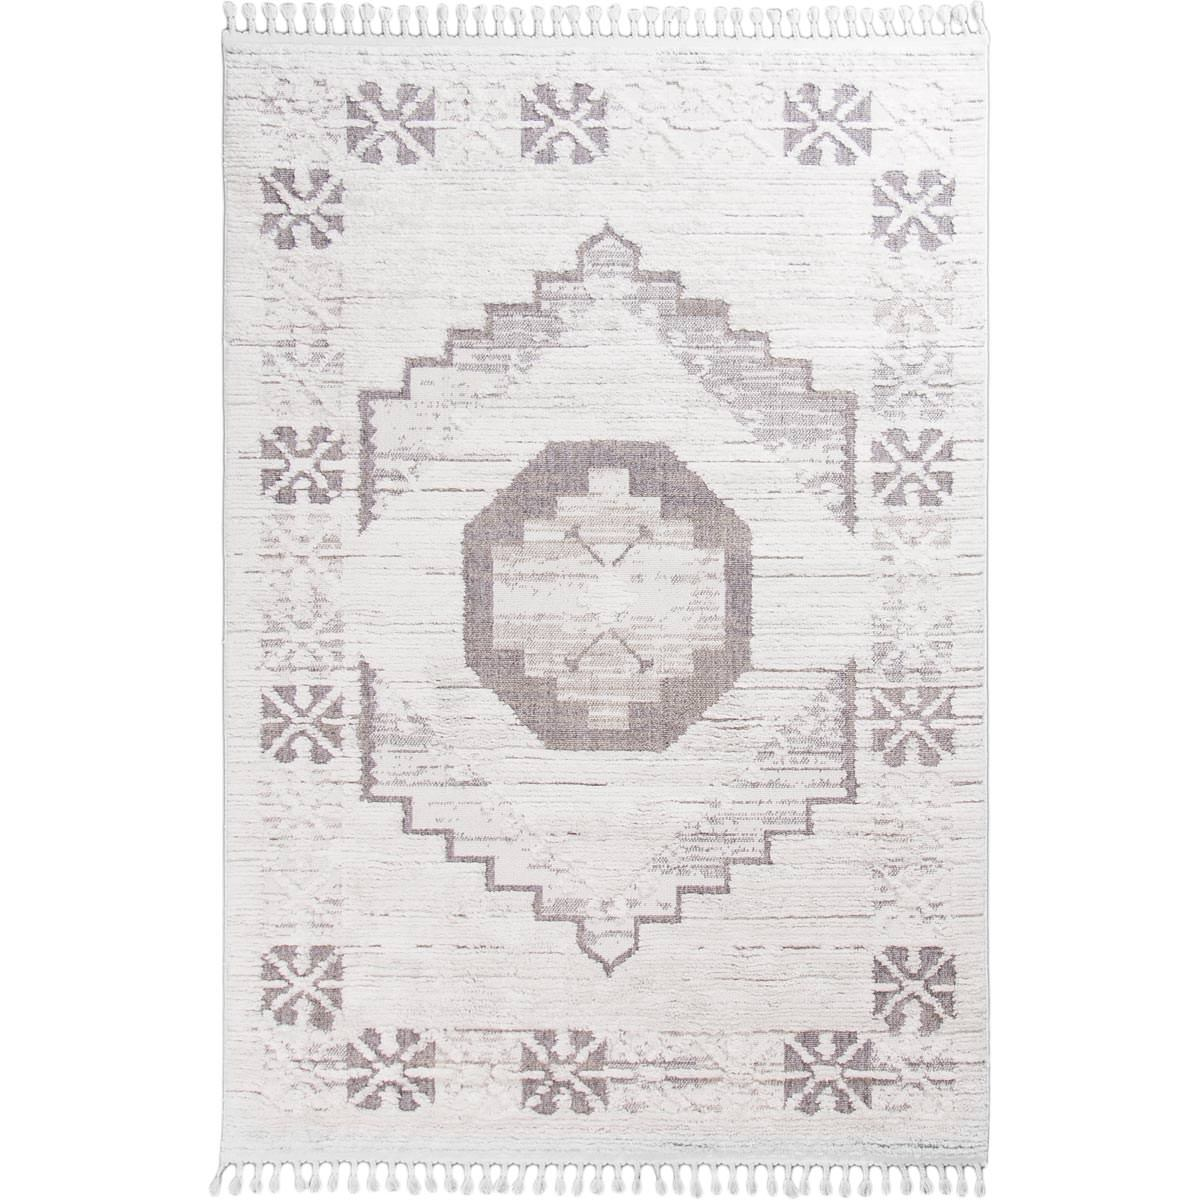 Atlas Rug 01 Grey/Cream 1